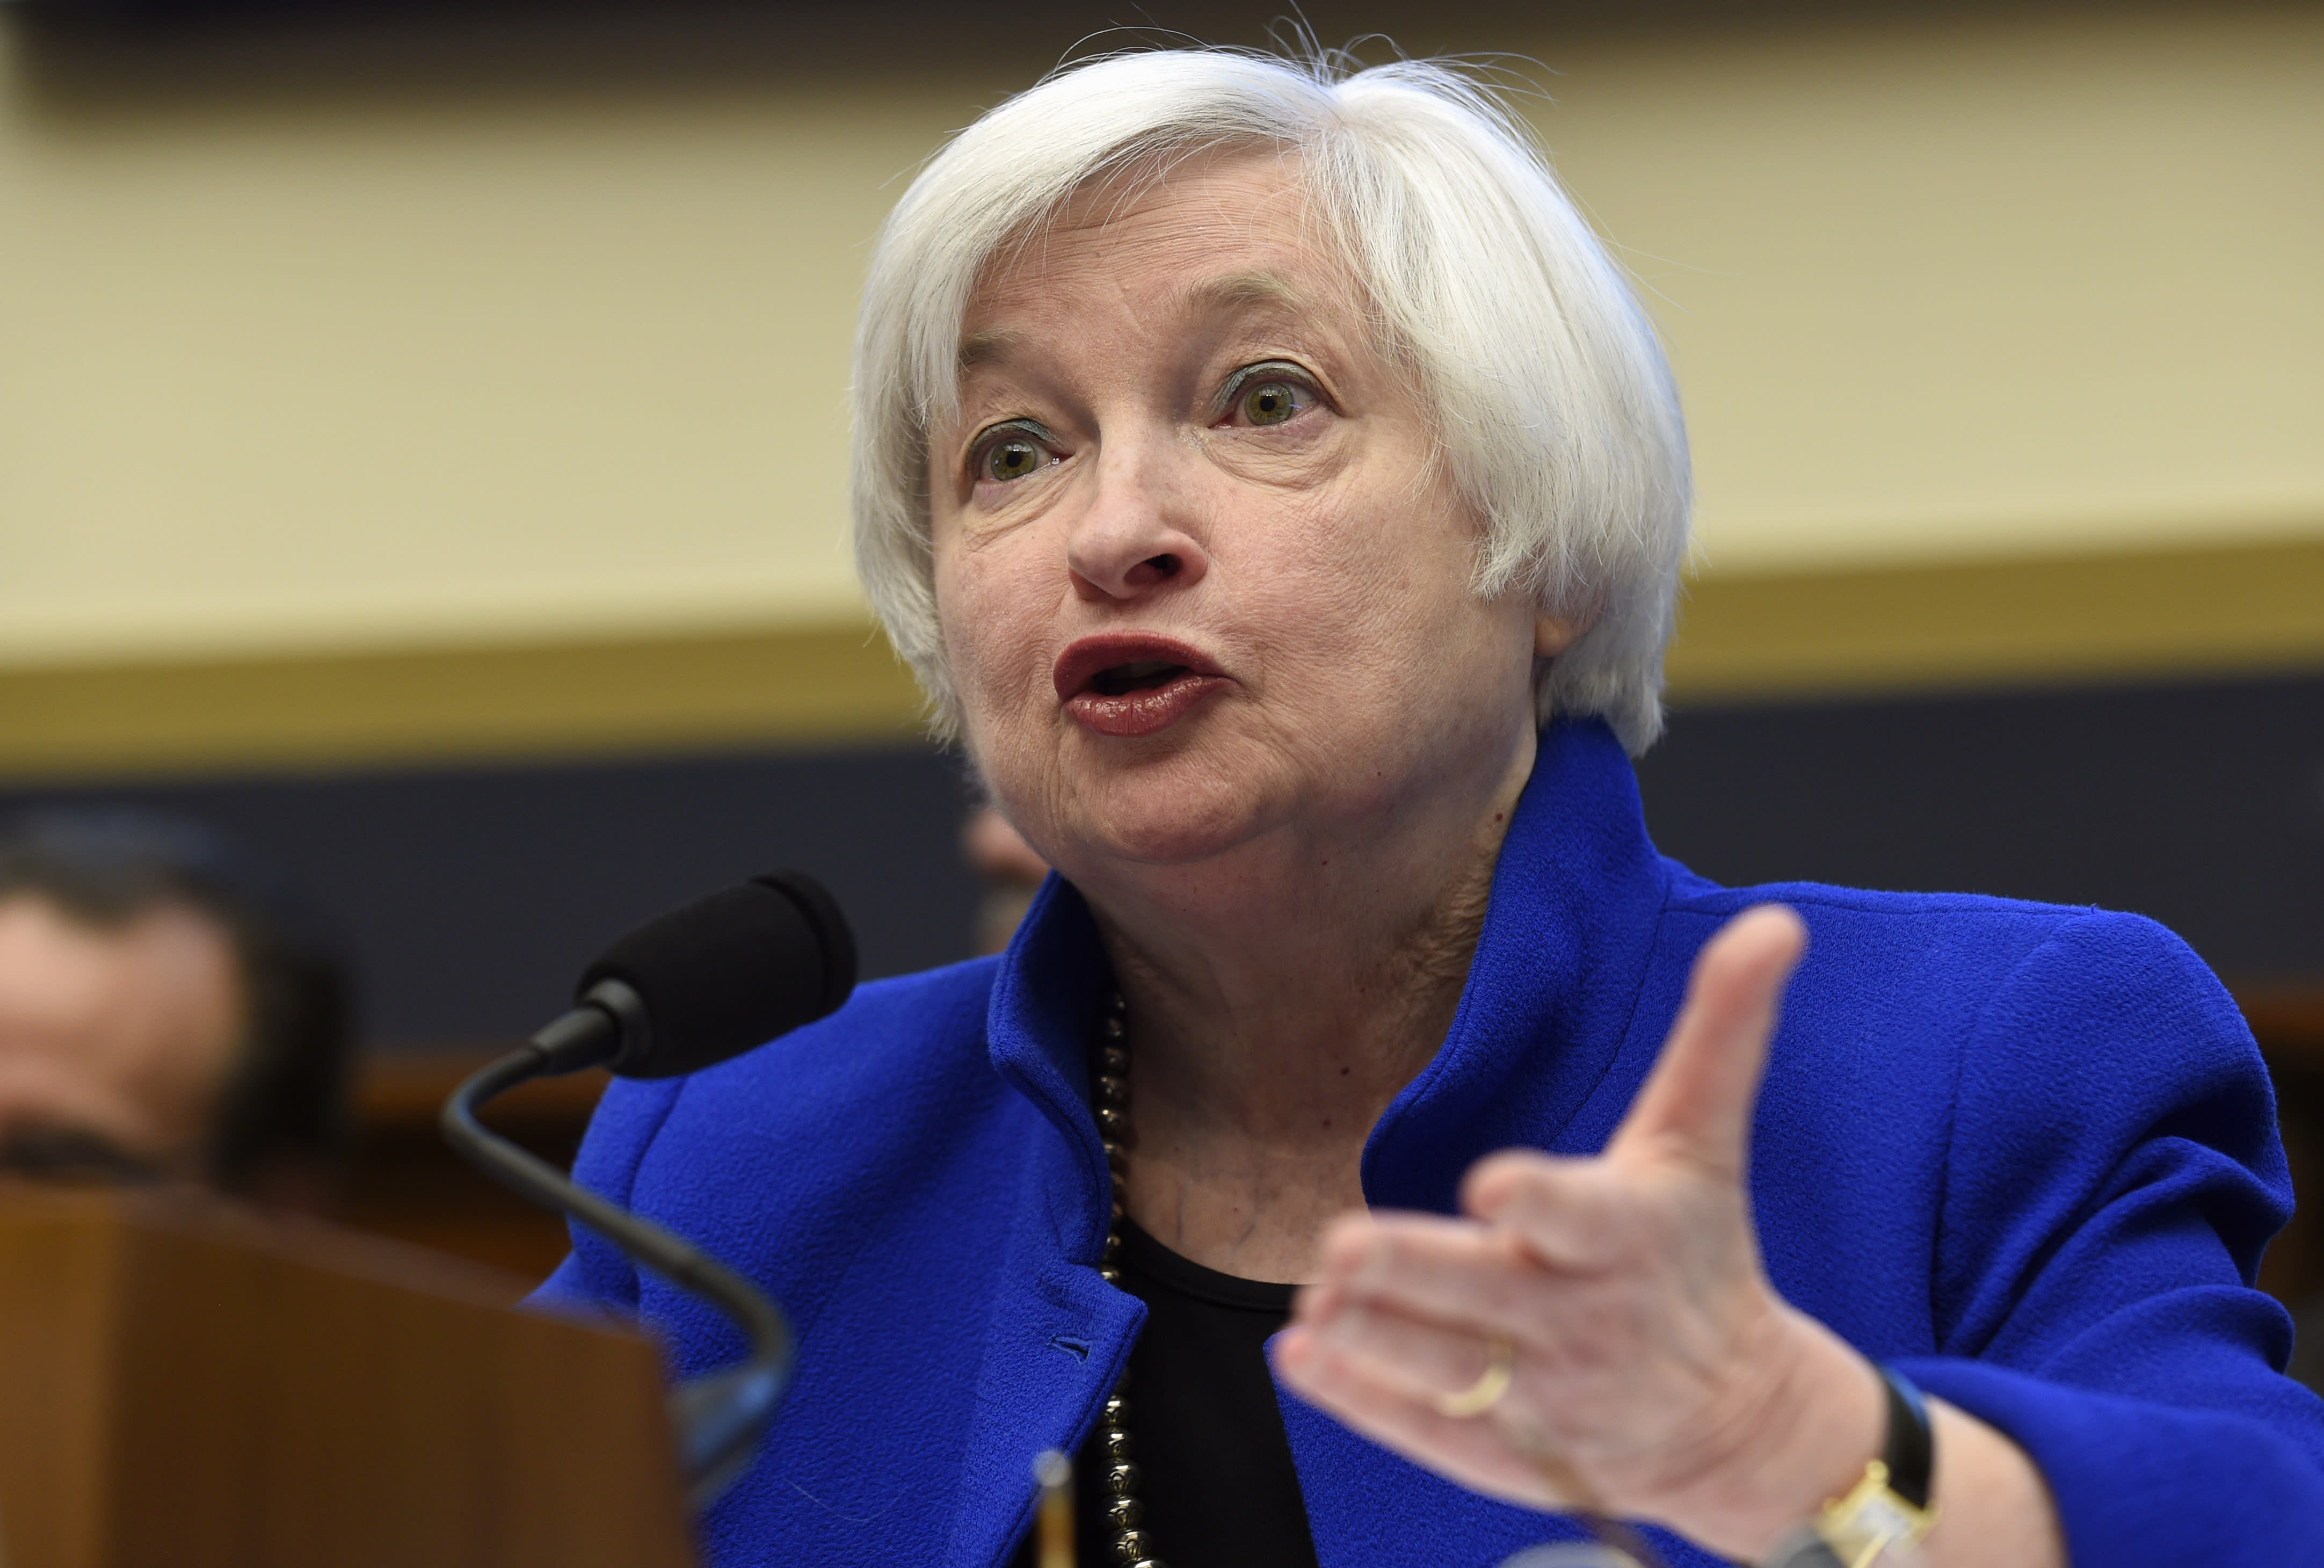 Yellen: Slower rate hikes if economy disappoints